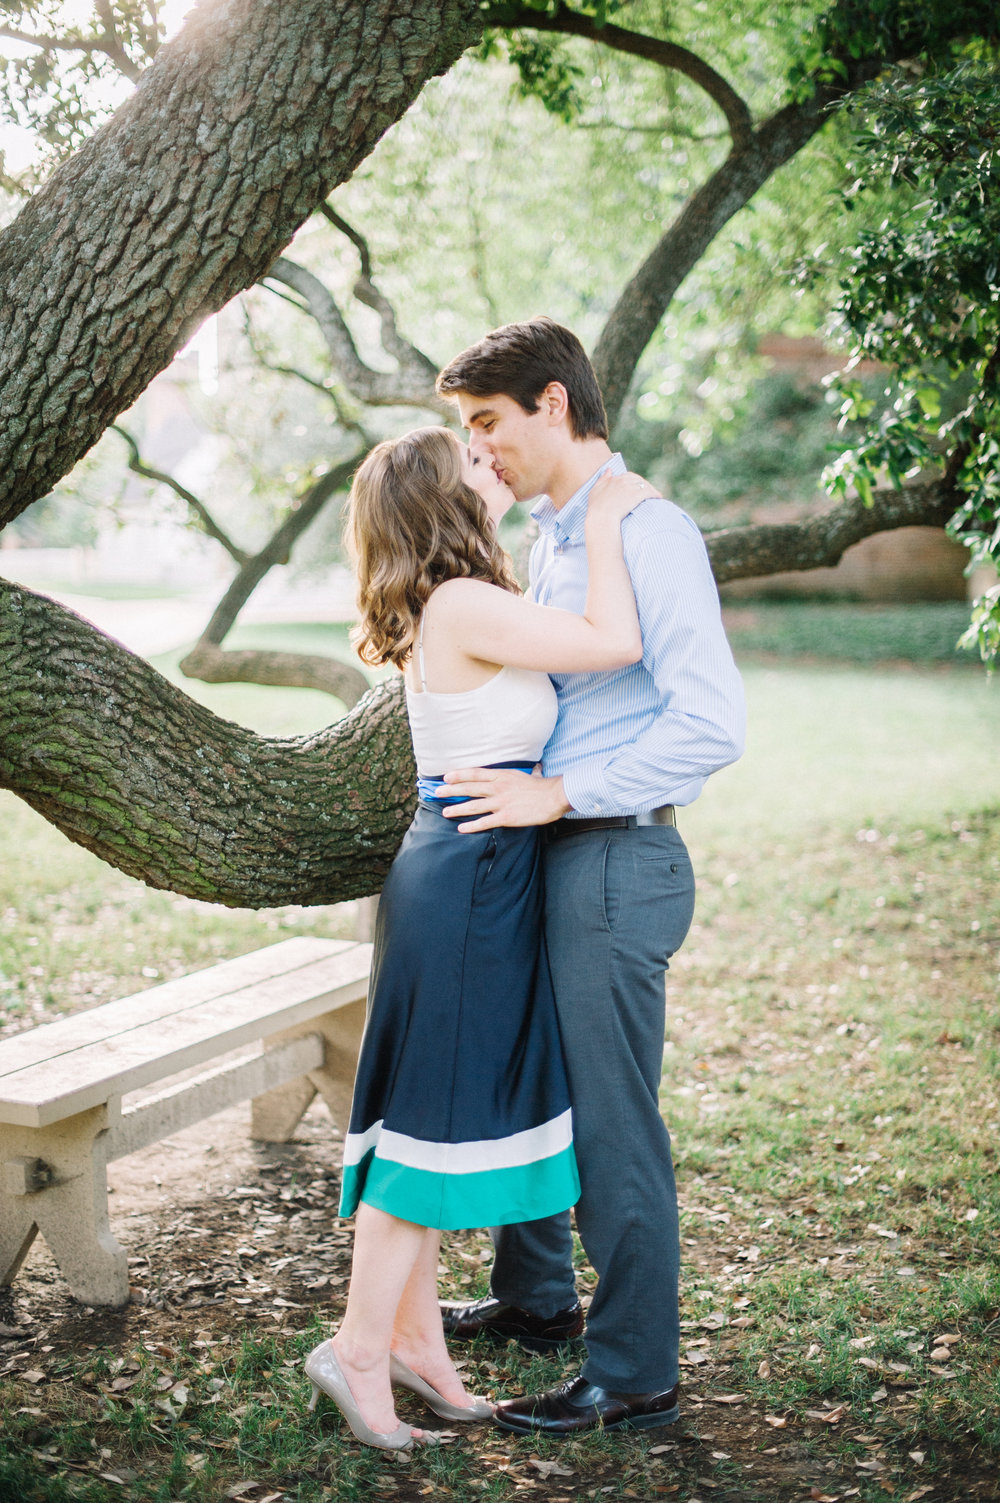 Williamsburgweddingphotographersarahhouston